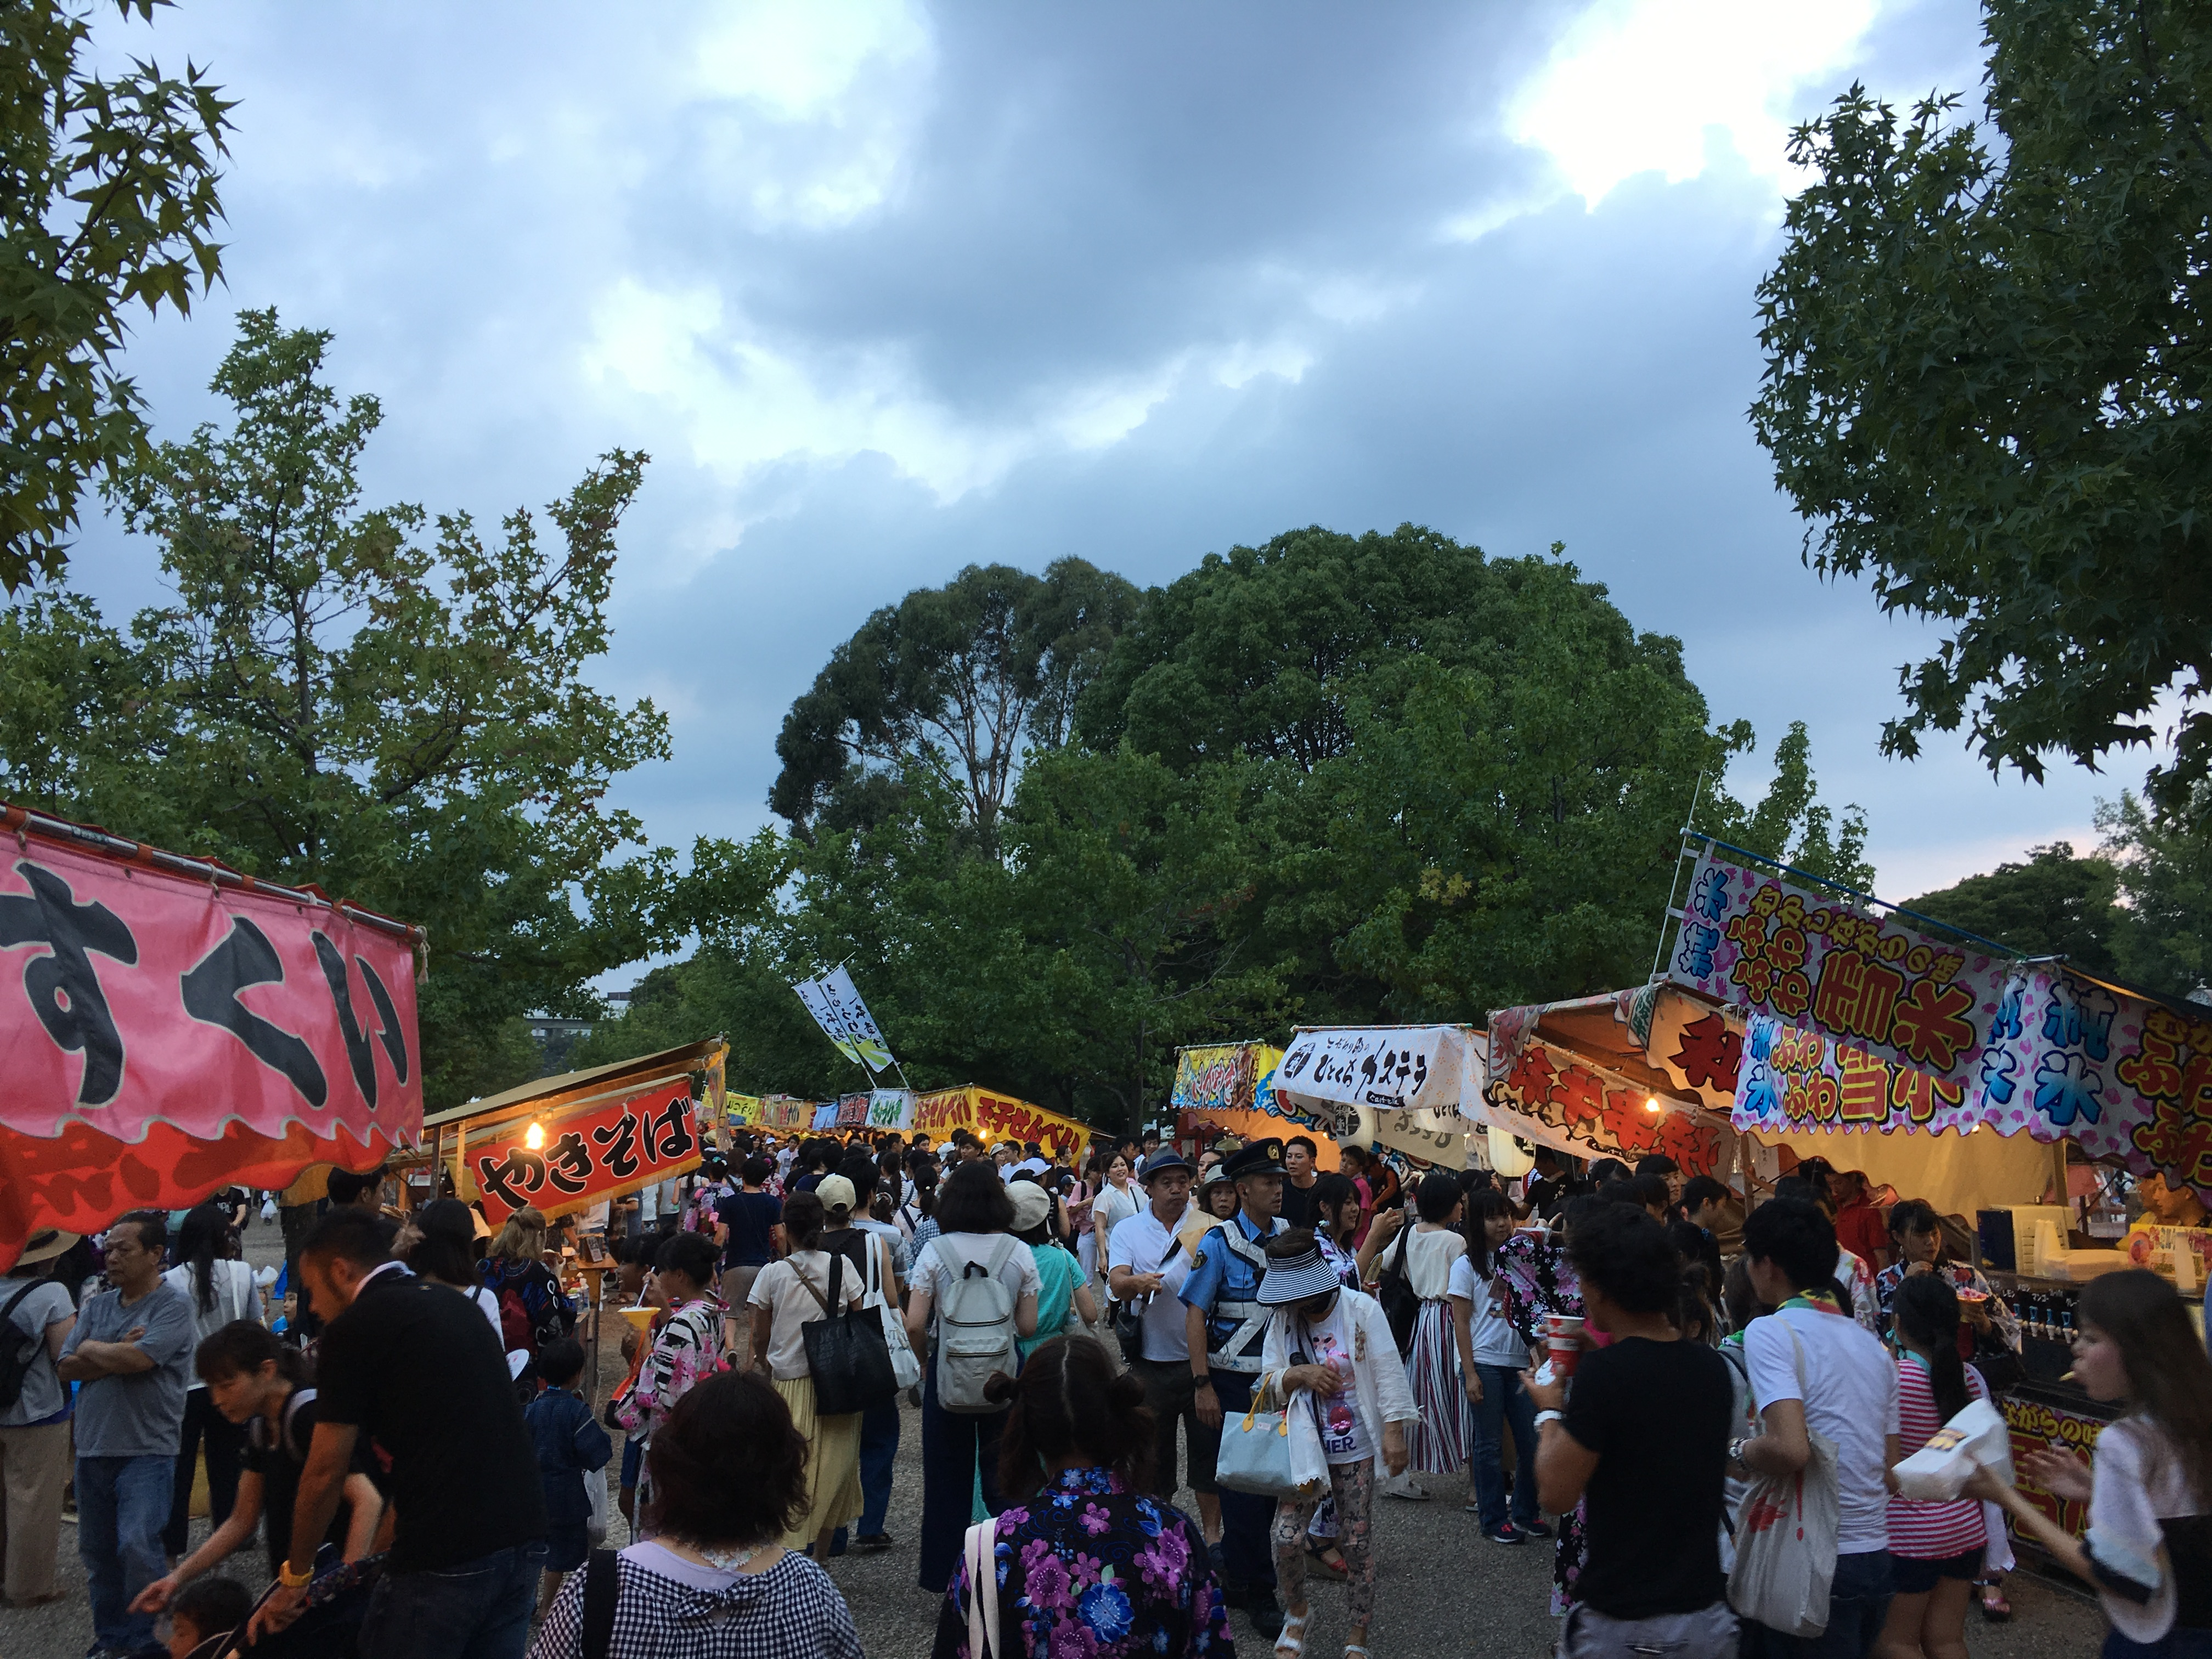 crowds at Japanese festivals and many colorful food stalls